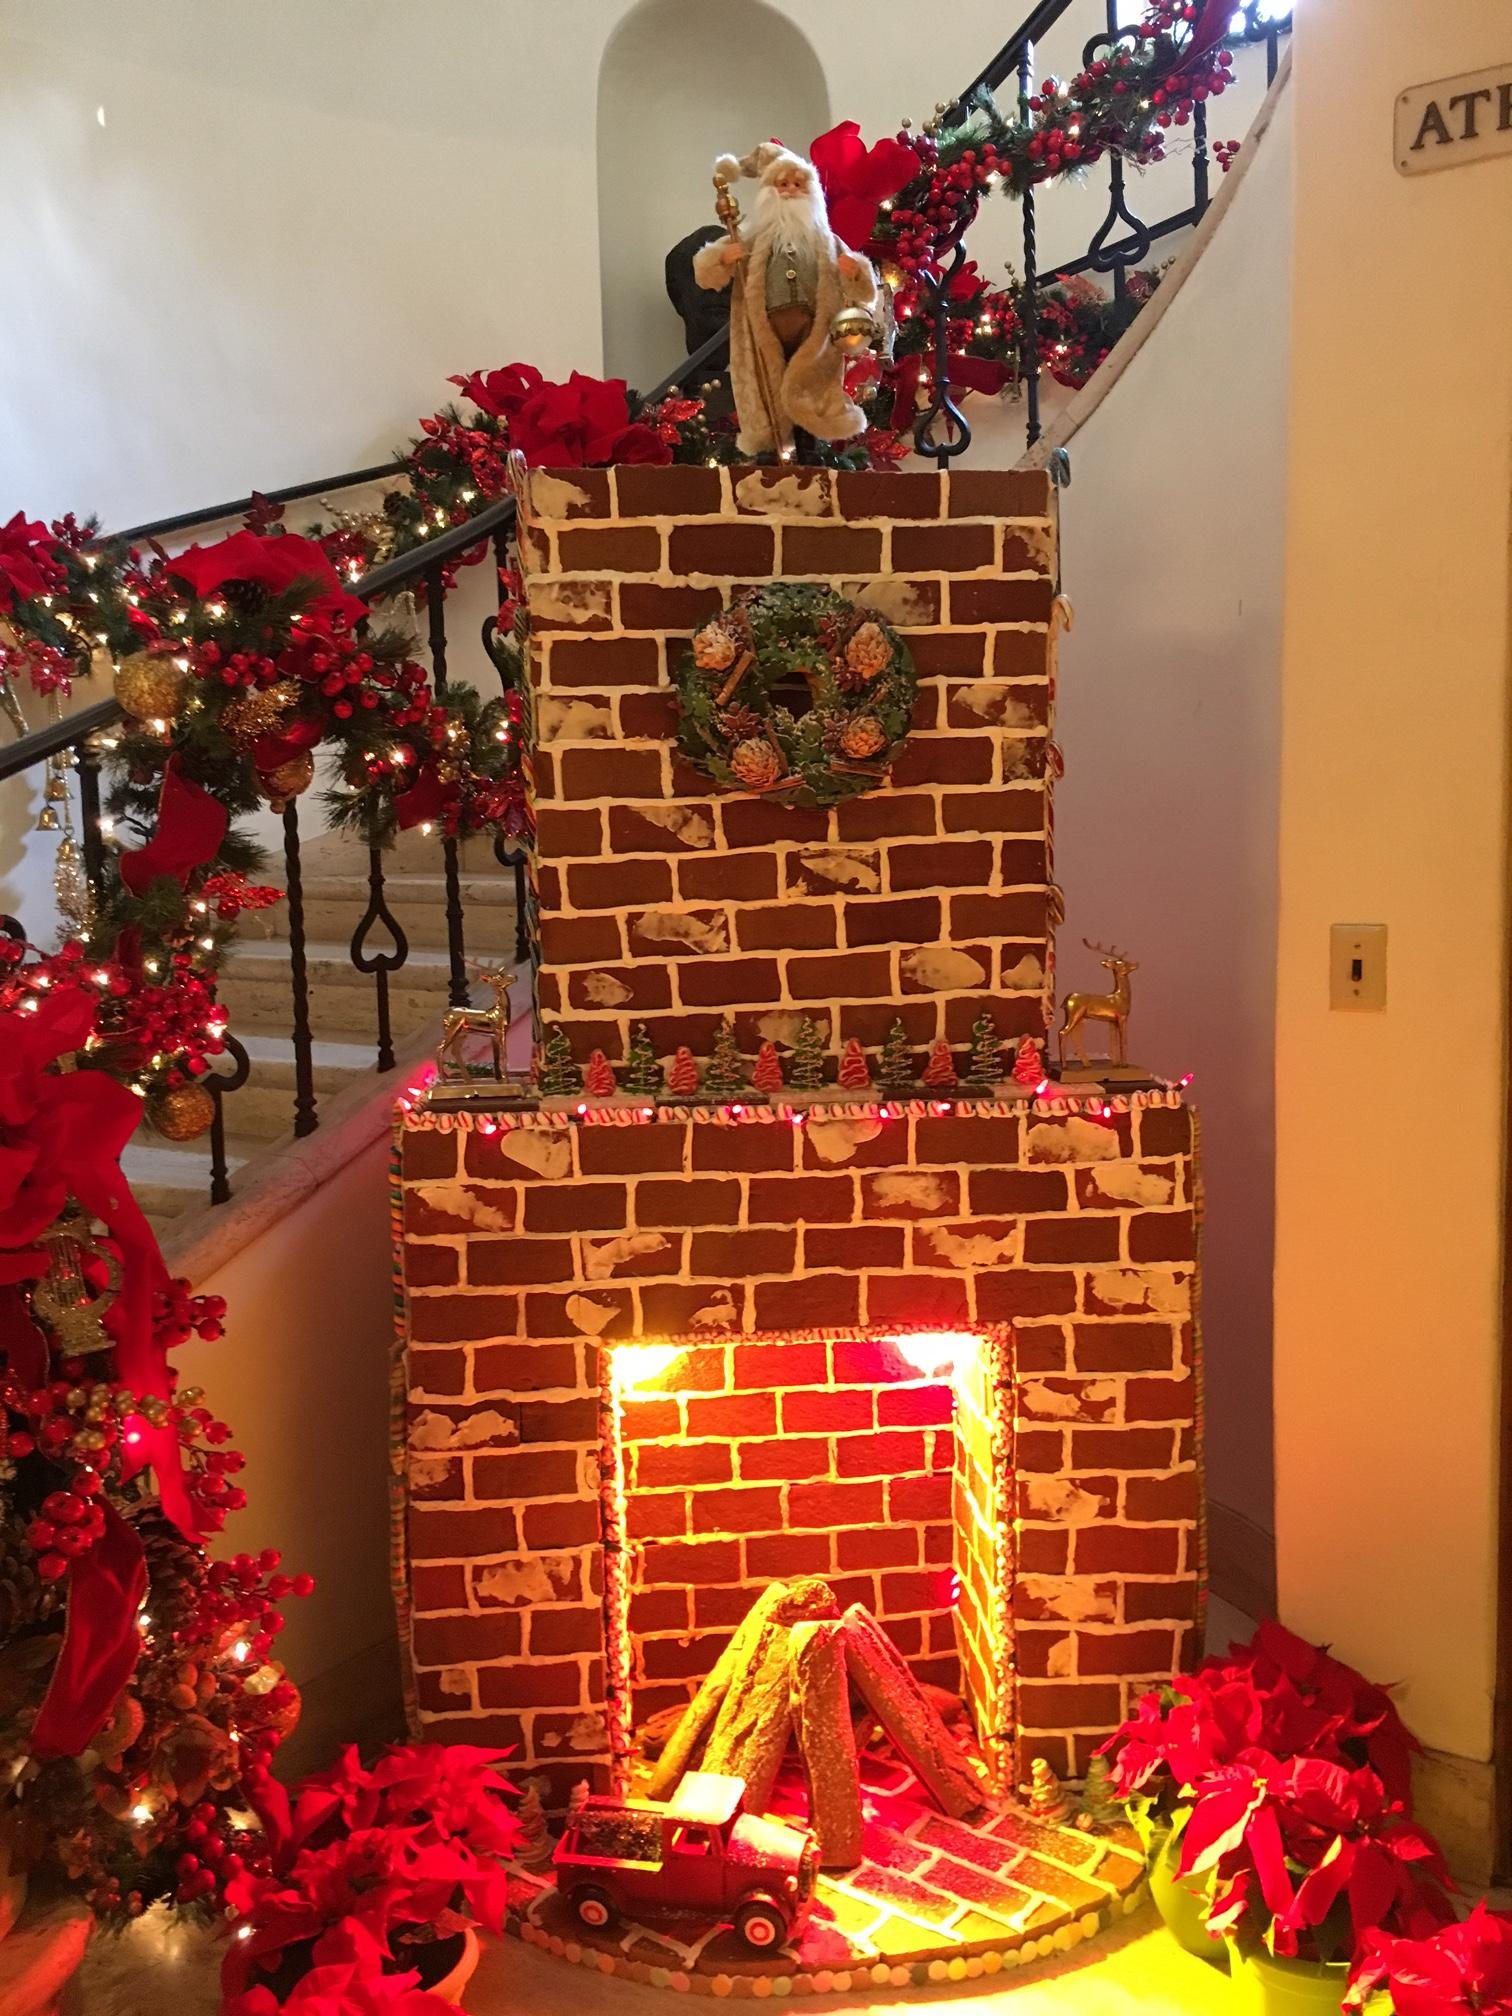 Gingerbread fireplace at the Caltech Athenaeum